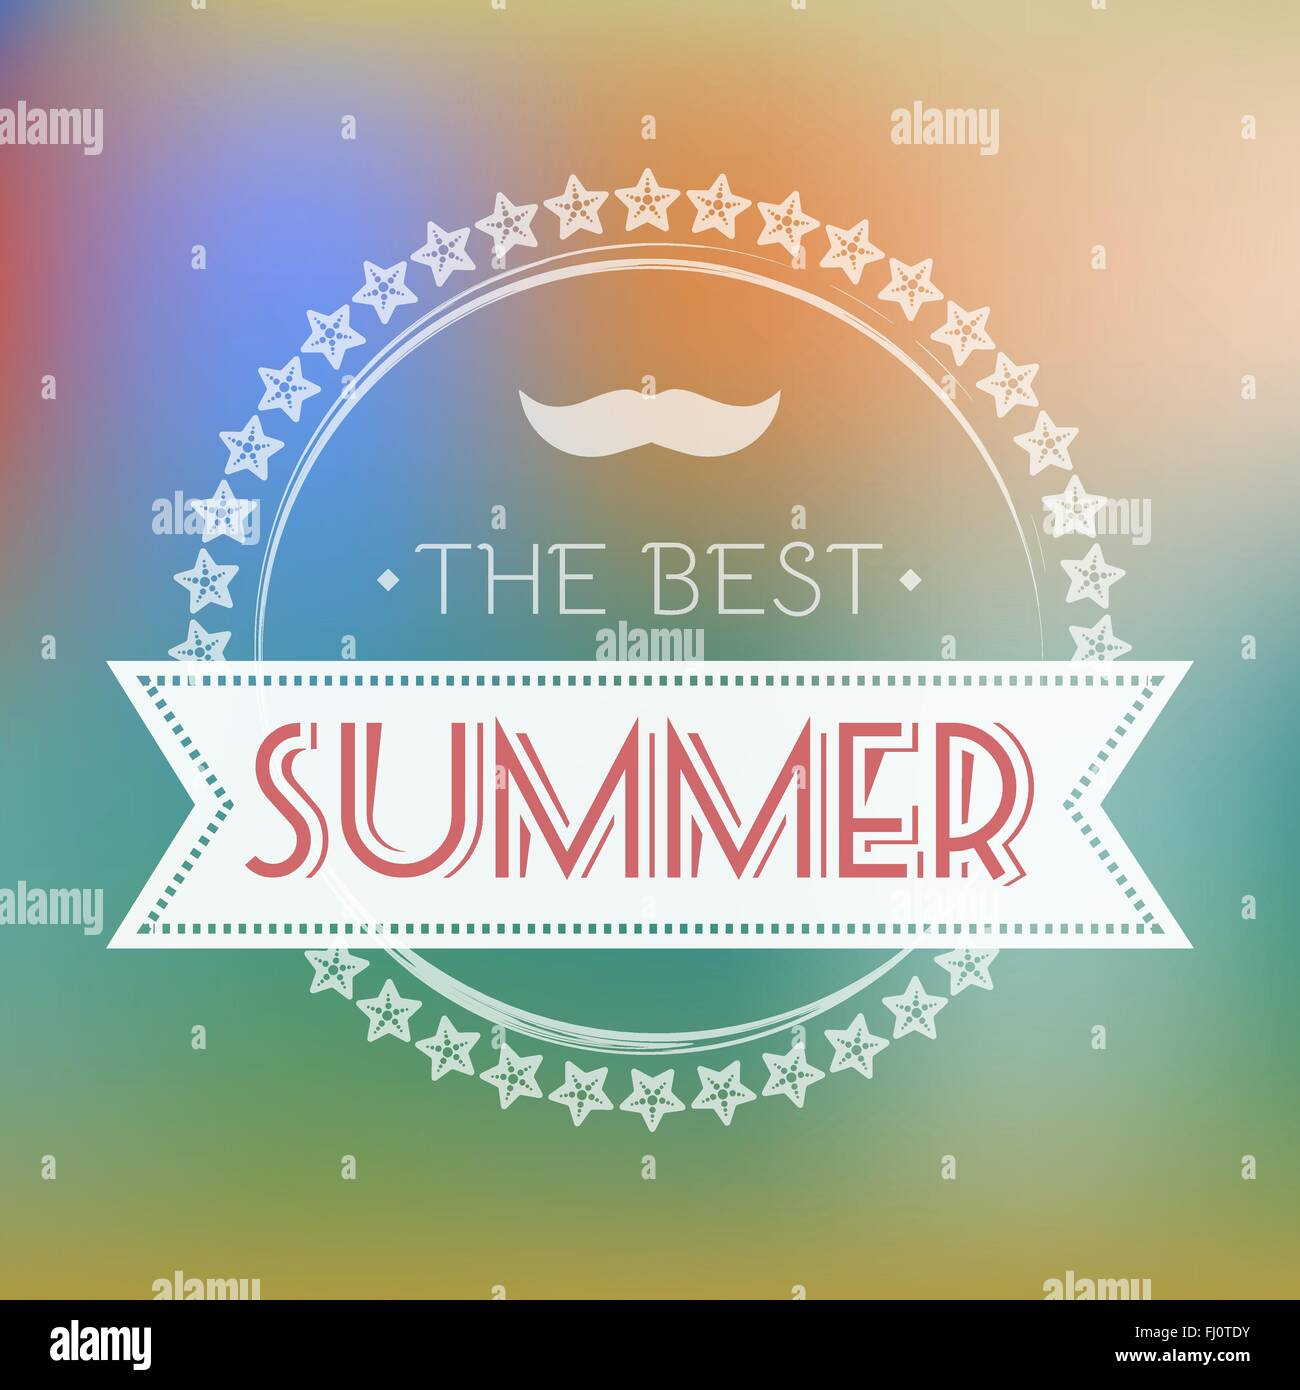 best summer flyer vector illustration holiday hot vacation card best summer flyer vector illustration holiday hot vacation card travel agency banner template on a colorful blurred backdrop